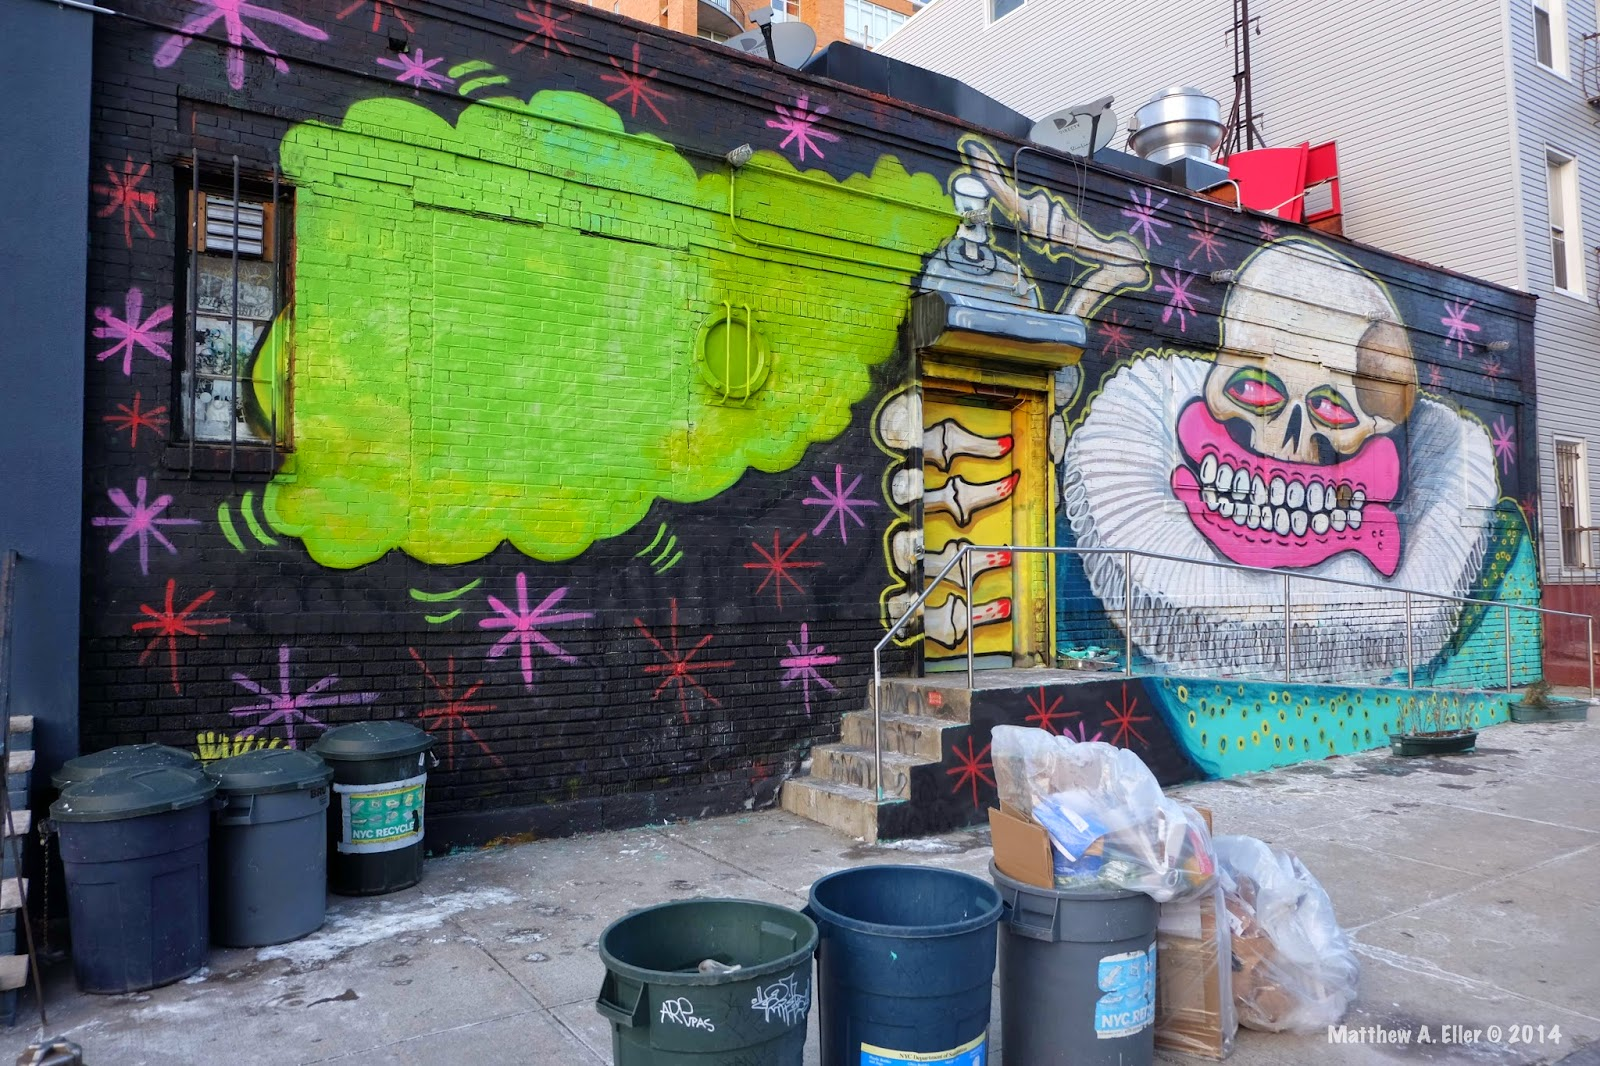 Sweet Toof paints a new mural in WIlliamsburg Brooklyn, NYC